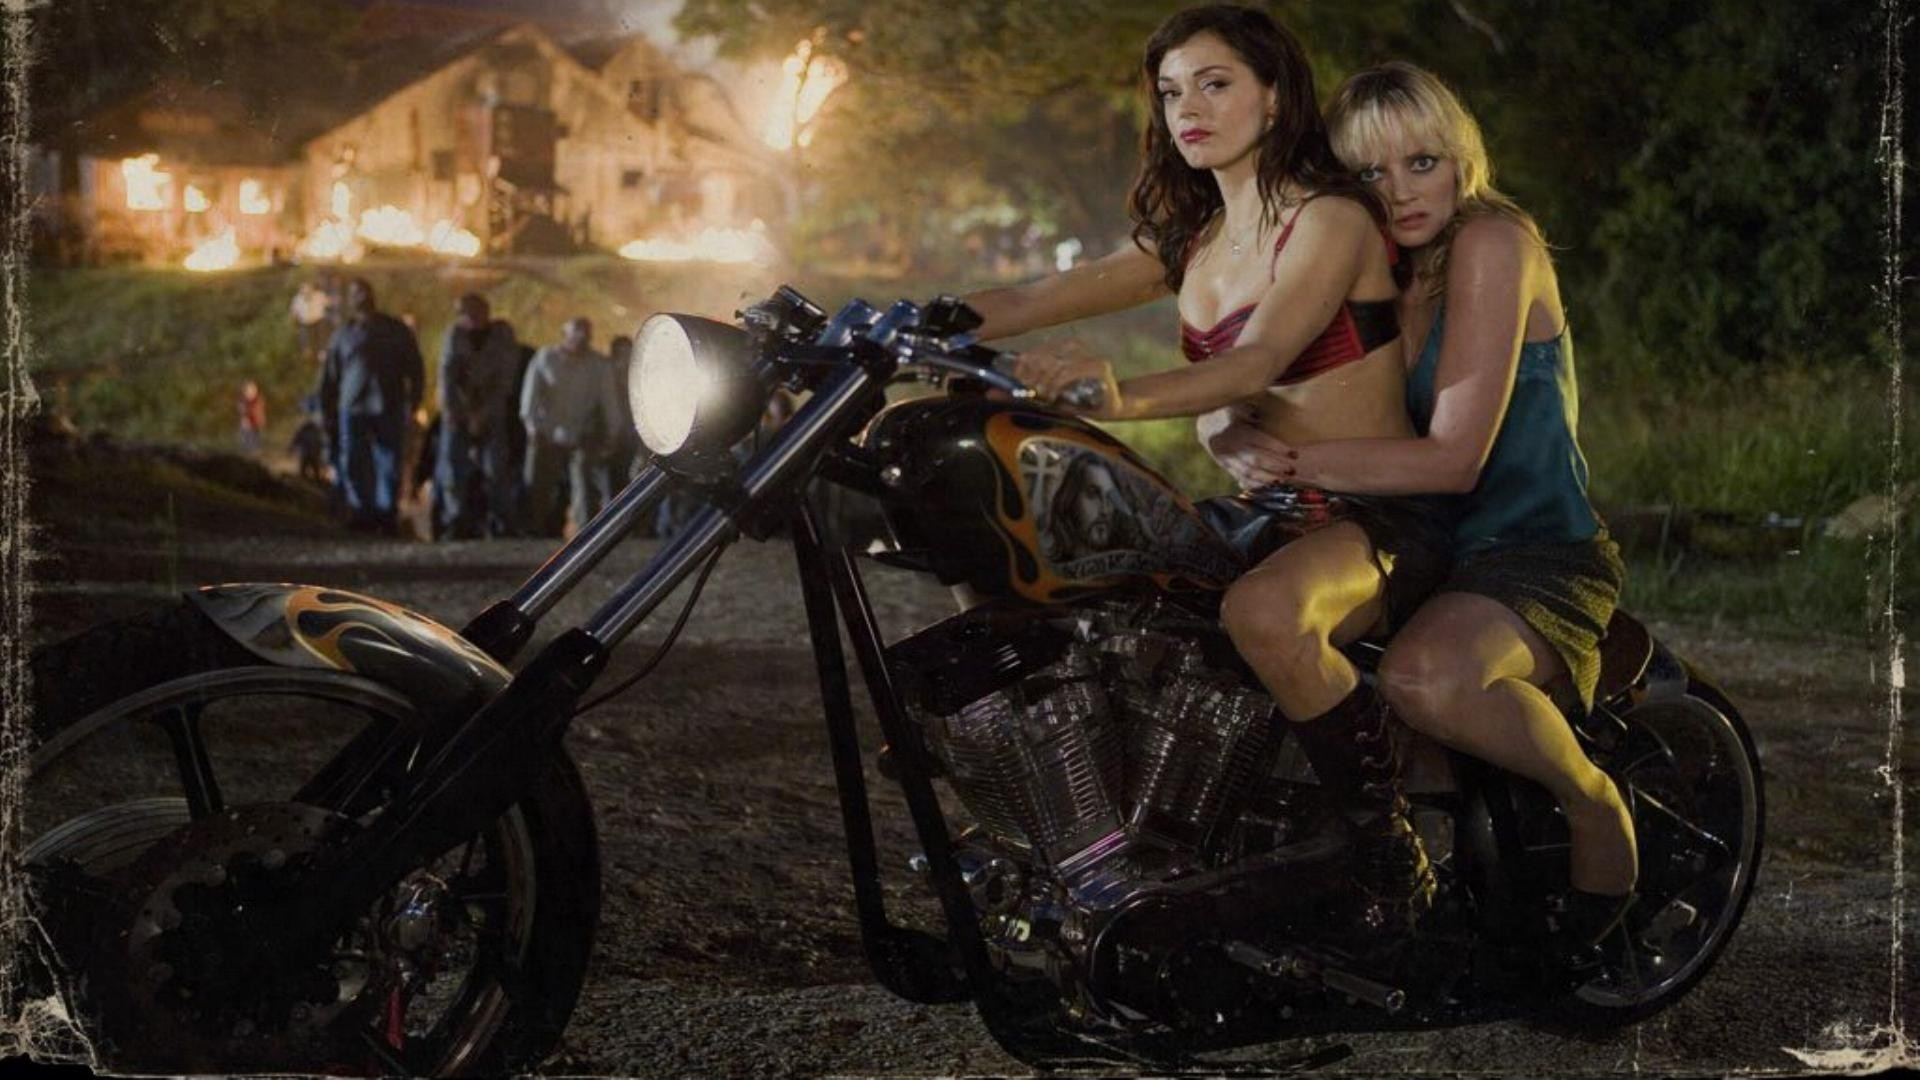 874320-free-planet-terror-wallpaper-1920x1080-for-mac.jpg